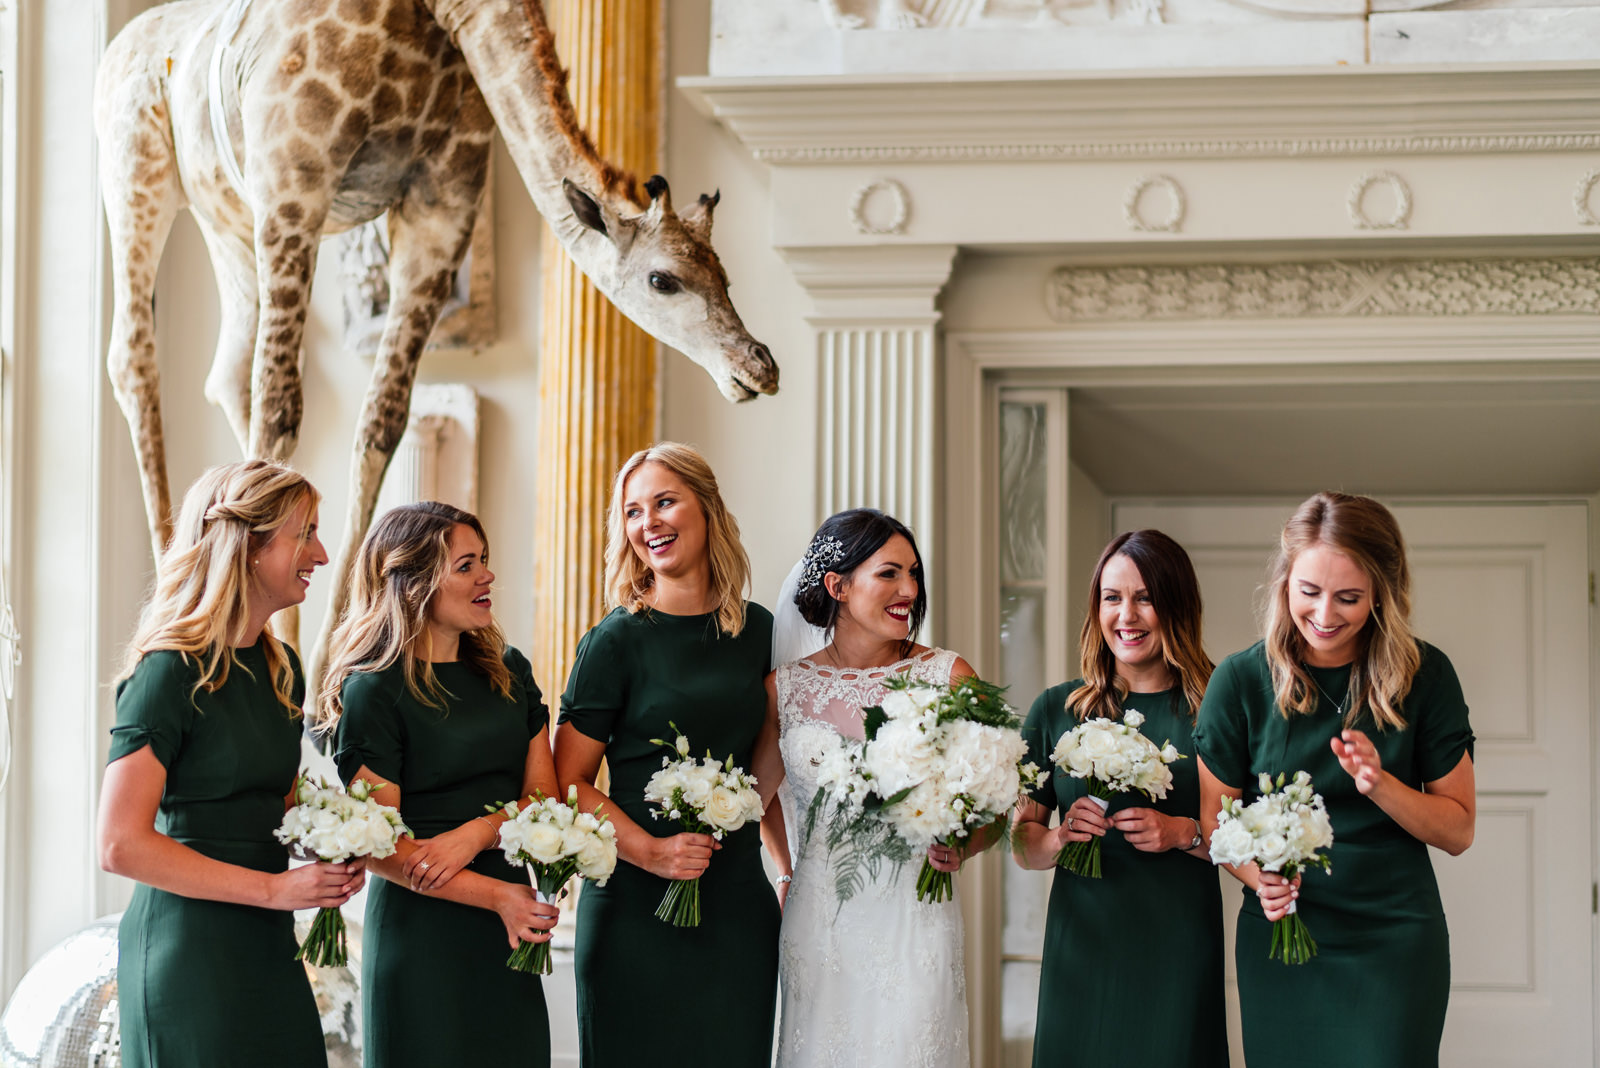 giraffe and bride and bridesmaids